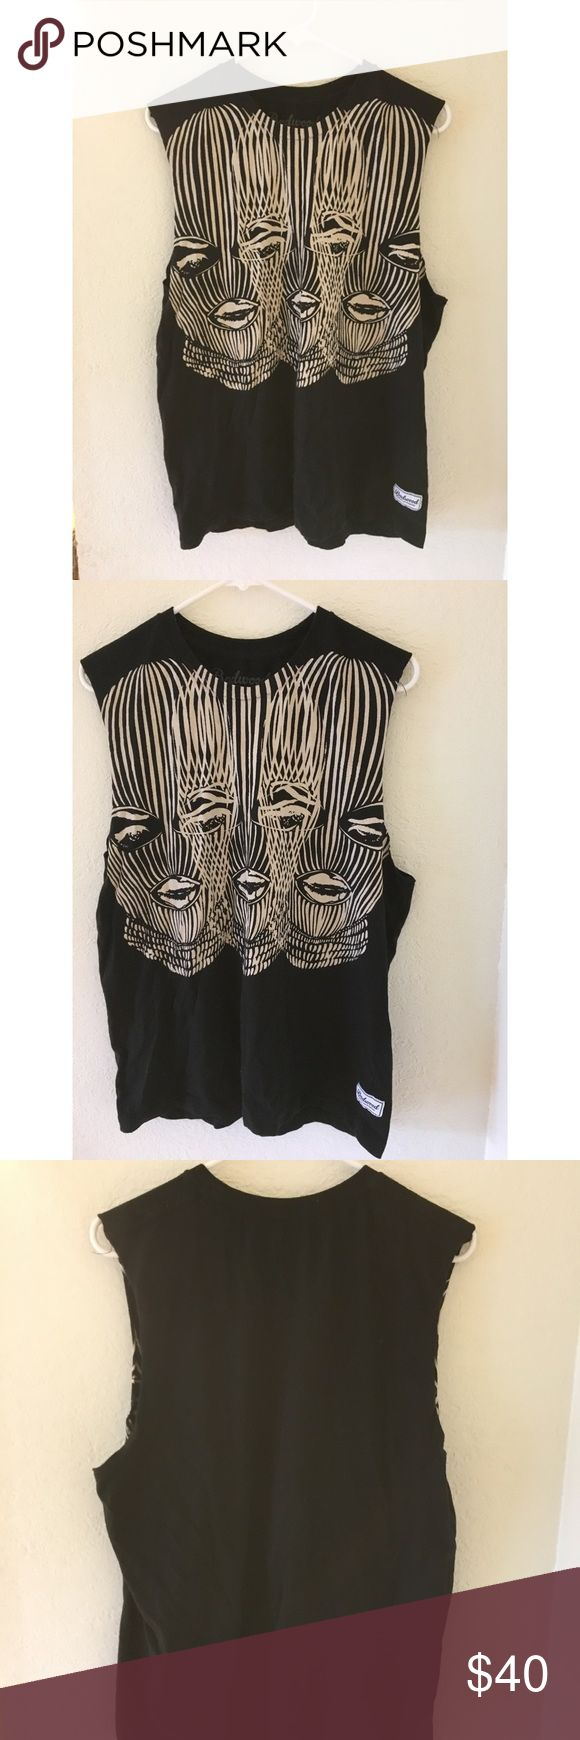 Badwood Wife Beater Top Large Badwood shirt. Never worn as I'm a size Small so it's a bigger fit. Sides came cut. badwood Tops